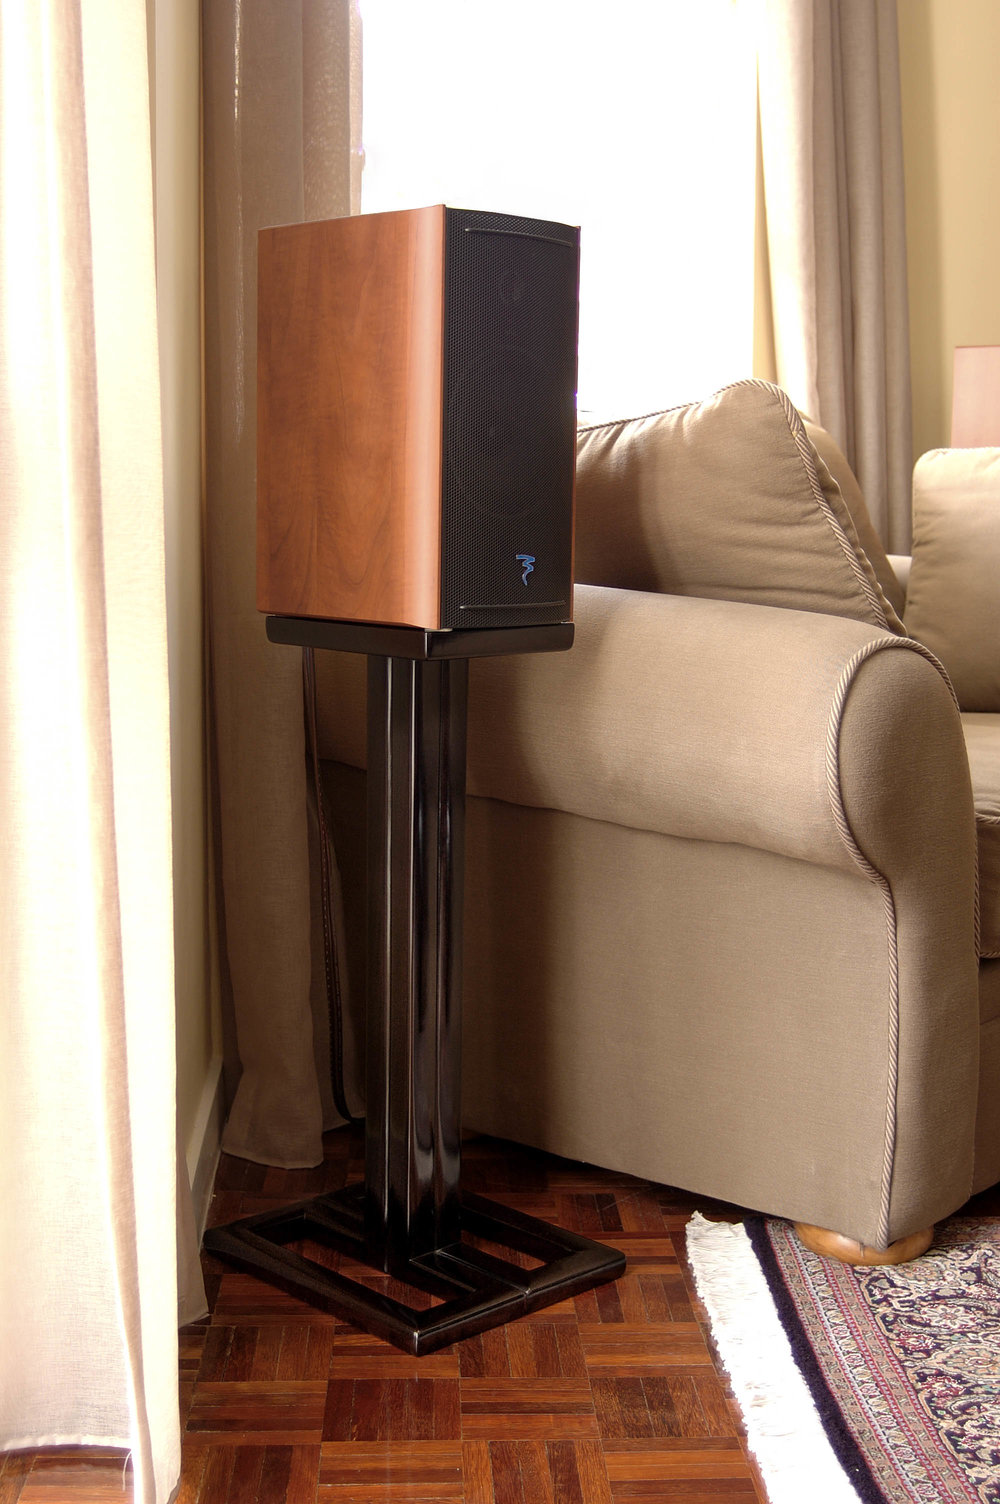 ....bespoke chinese ming style furniture : speaker stand..特别定制中式明式家具 : 喇叭几架....